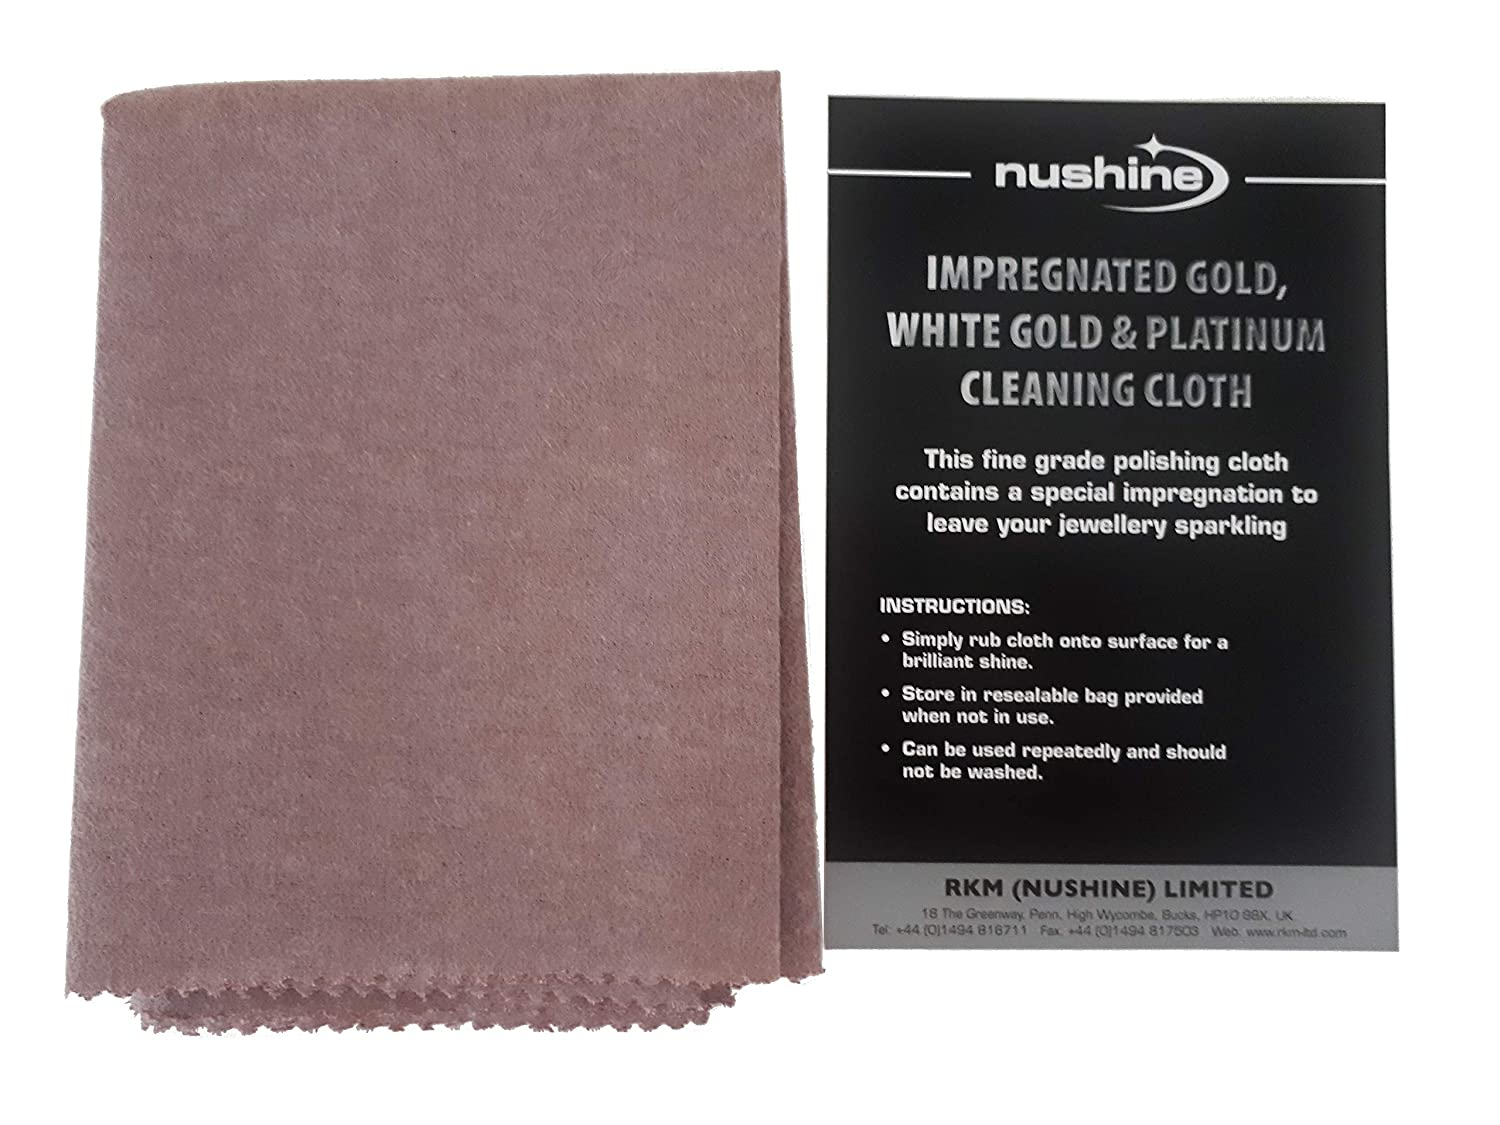 Nushine Gold, White Gold & Platinum Cleaning Cloth (LARGE 44 x 31.5cm) - Contains Special Impregnation